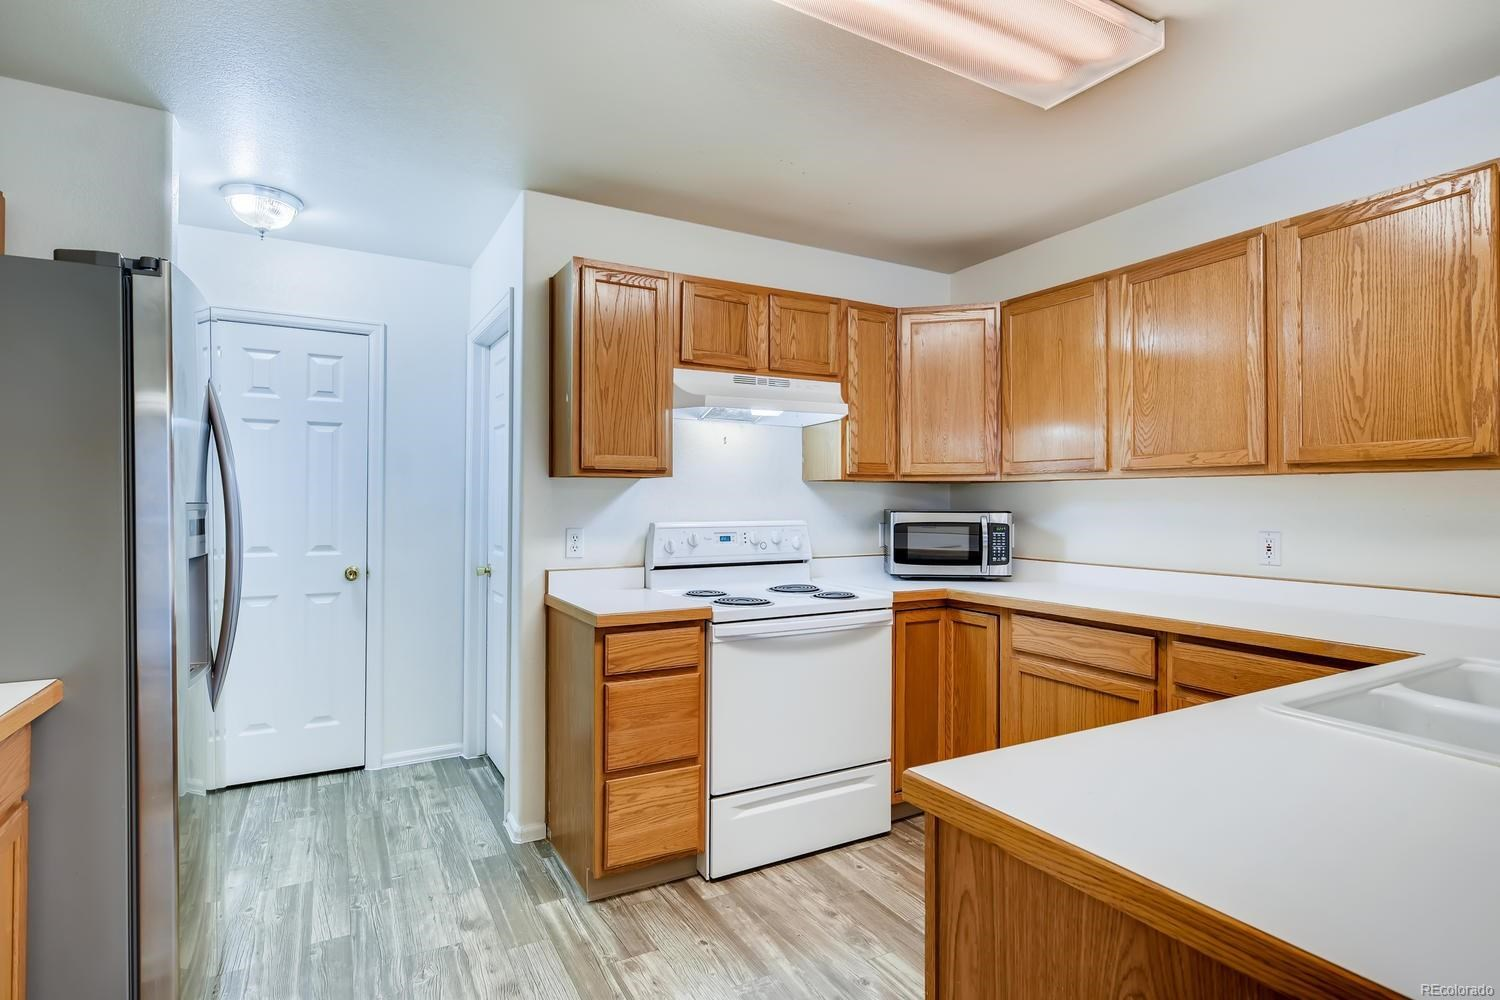 MLS# 7435178 - 8 - 3926 Christy Heights, Colorado Springs, CO 80906